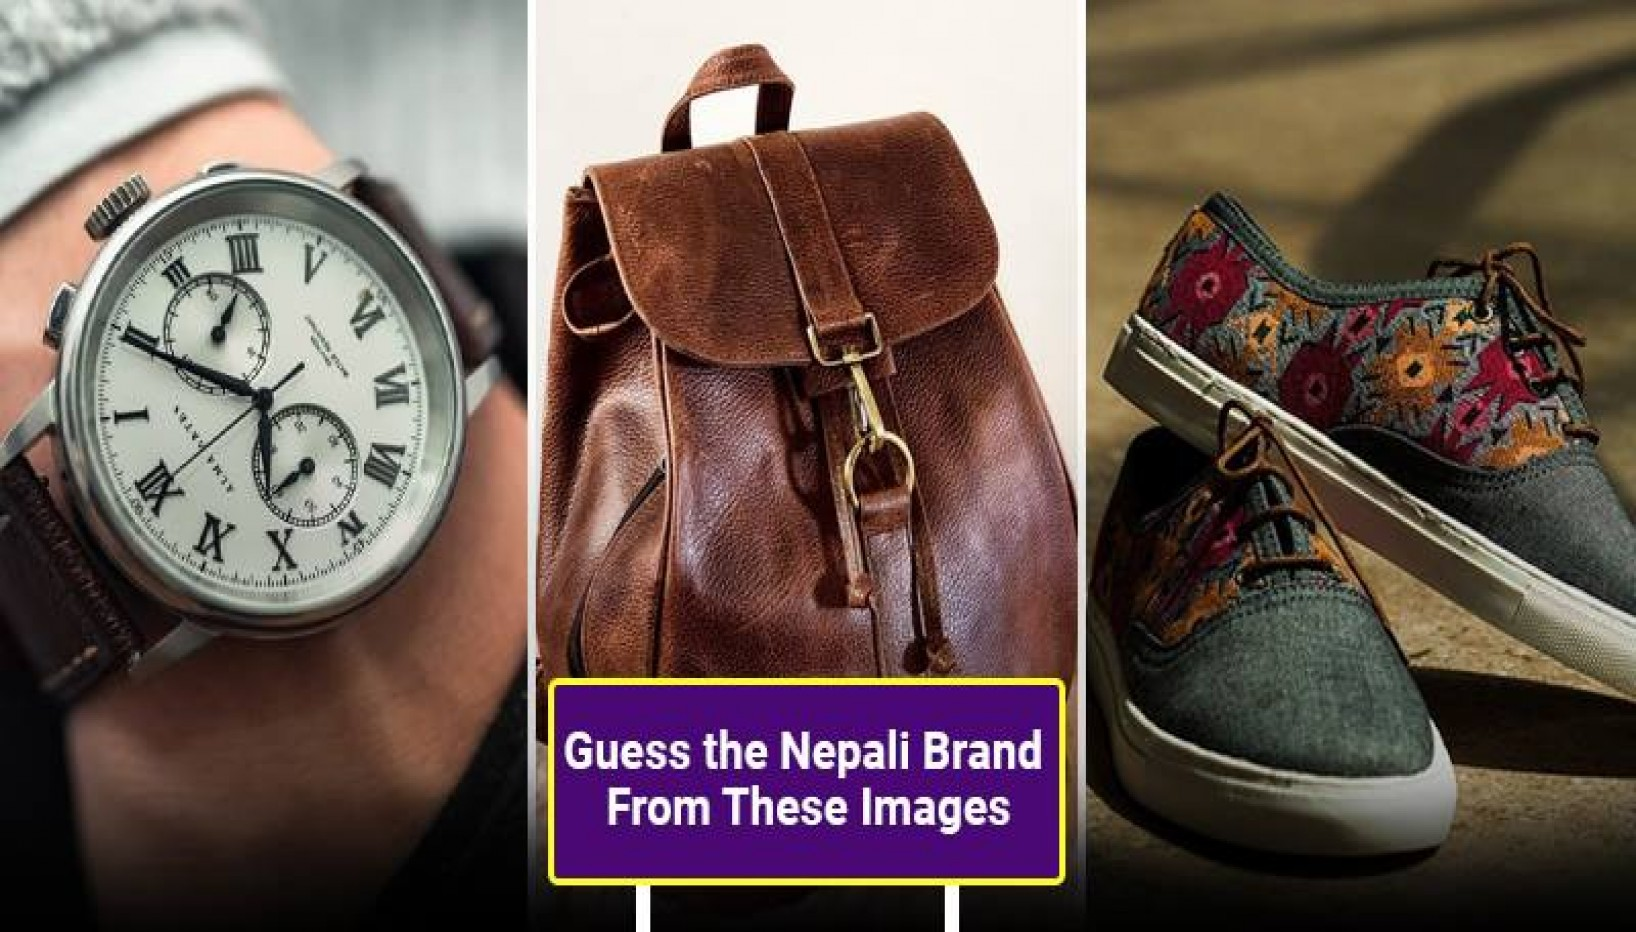 Can You Guess Which Nepali Brand Makes These Products?